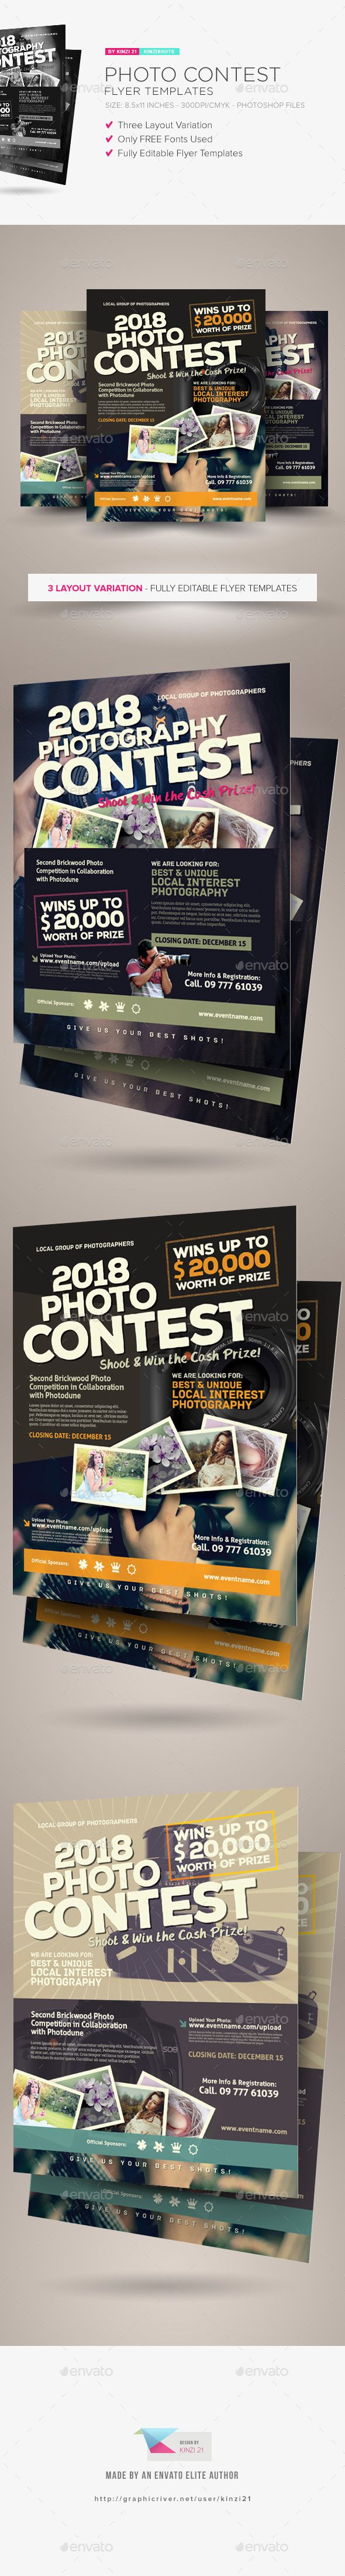 Photo Contest Flyer Templates — Photoshop PSD #photography #8.5x11 • Download ➝ https://graphicriver.net/item/photo-contest-flyer-templates/18183937?ref=pxcr